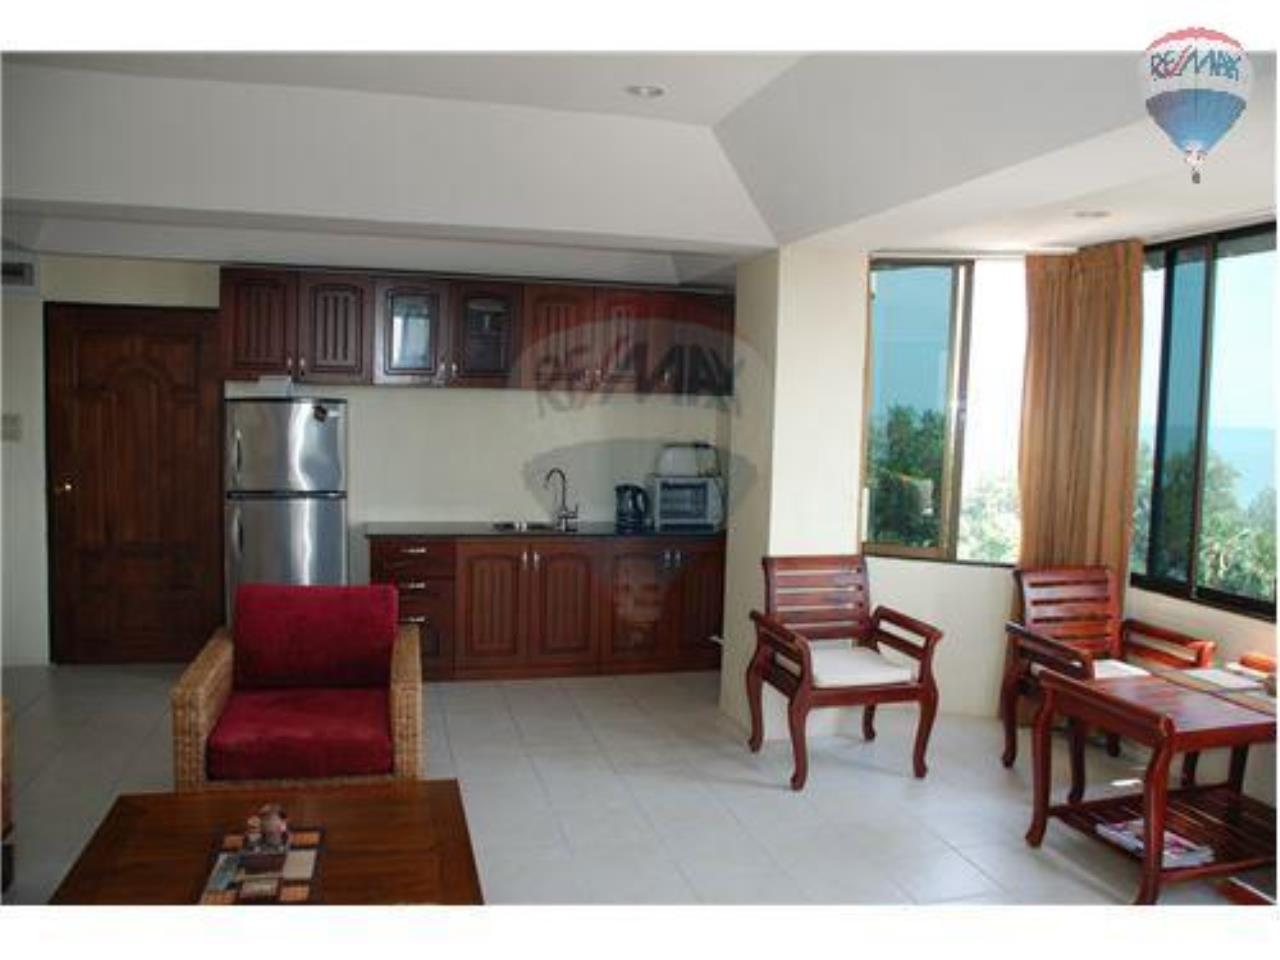 RE/MAX Beach Town Agency's  Catterya Condo Cha-Am 275/274 9